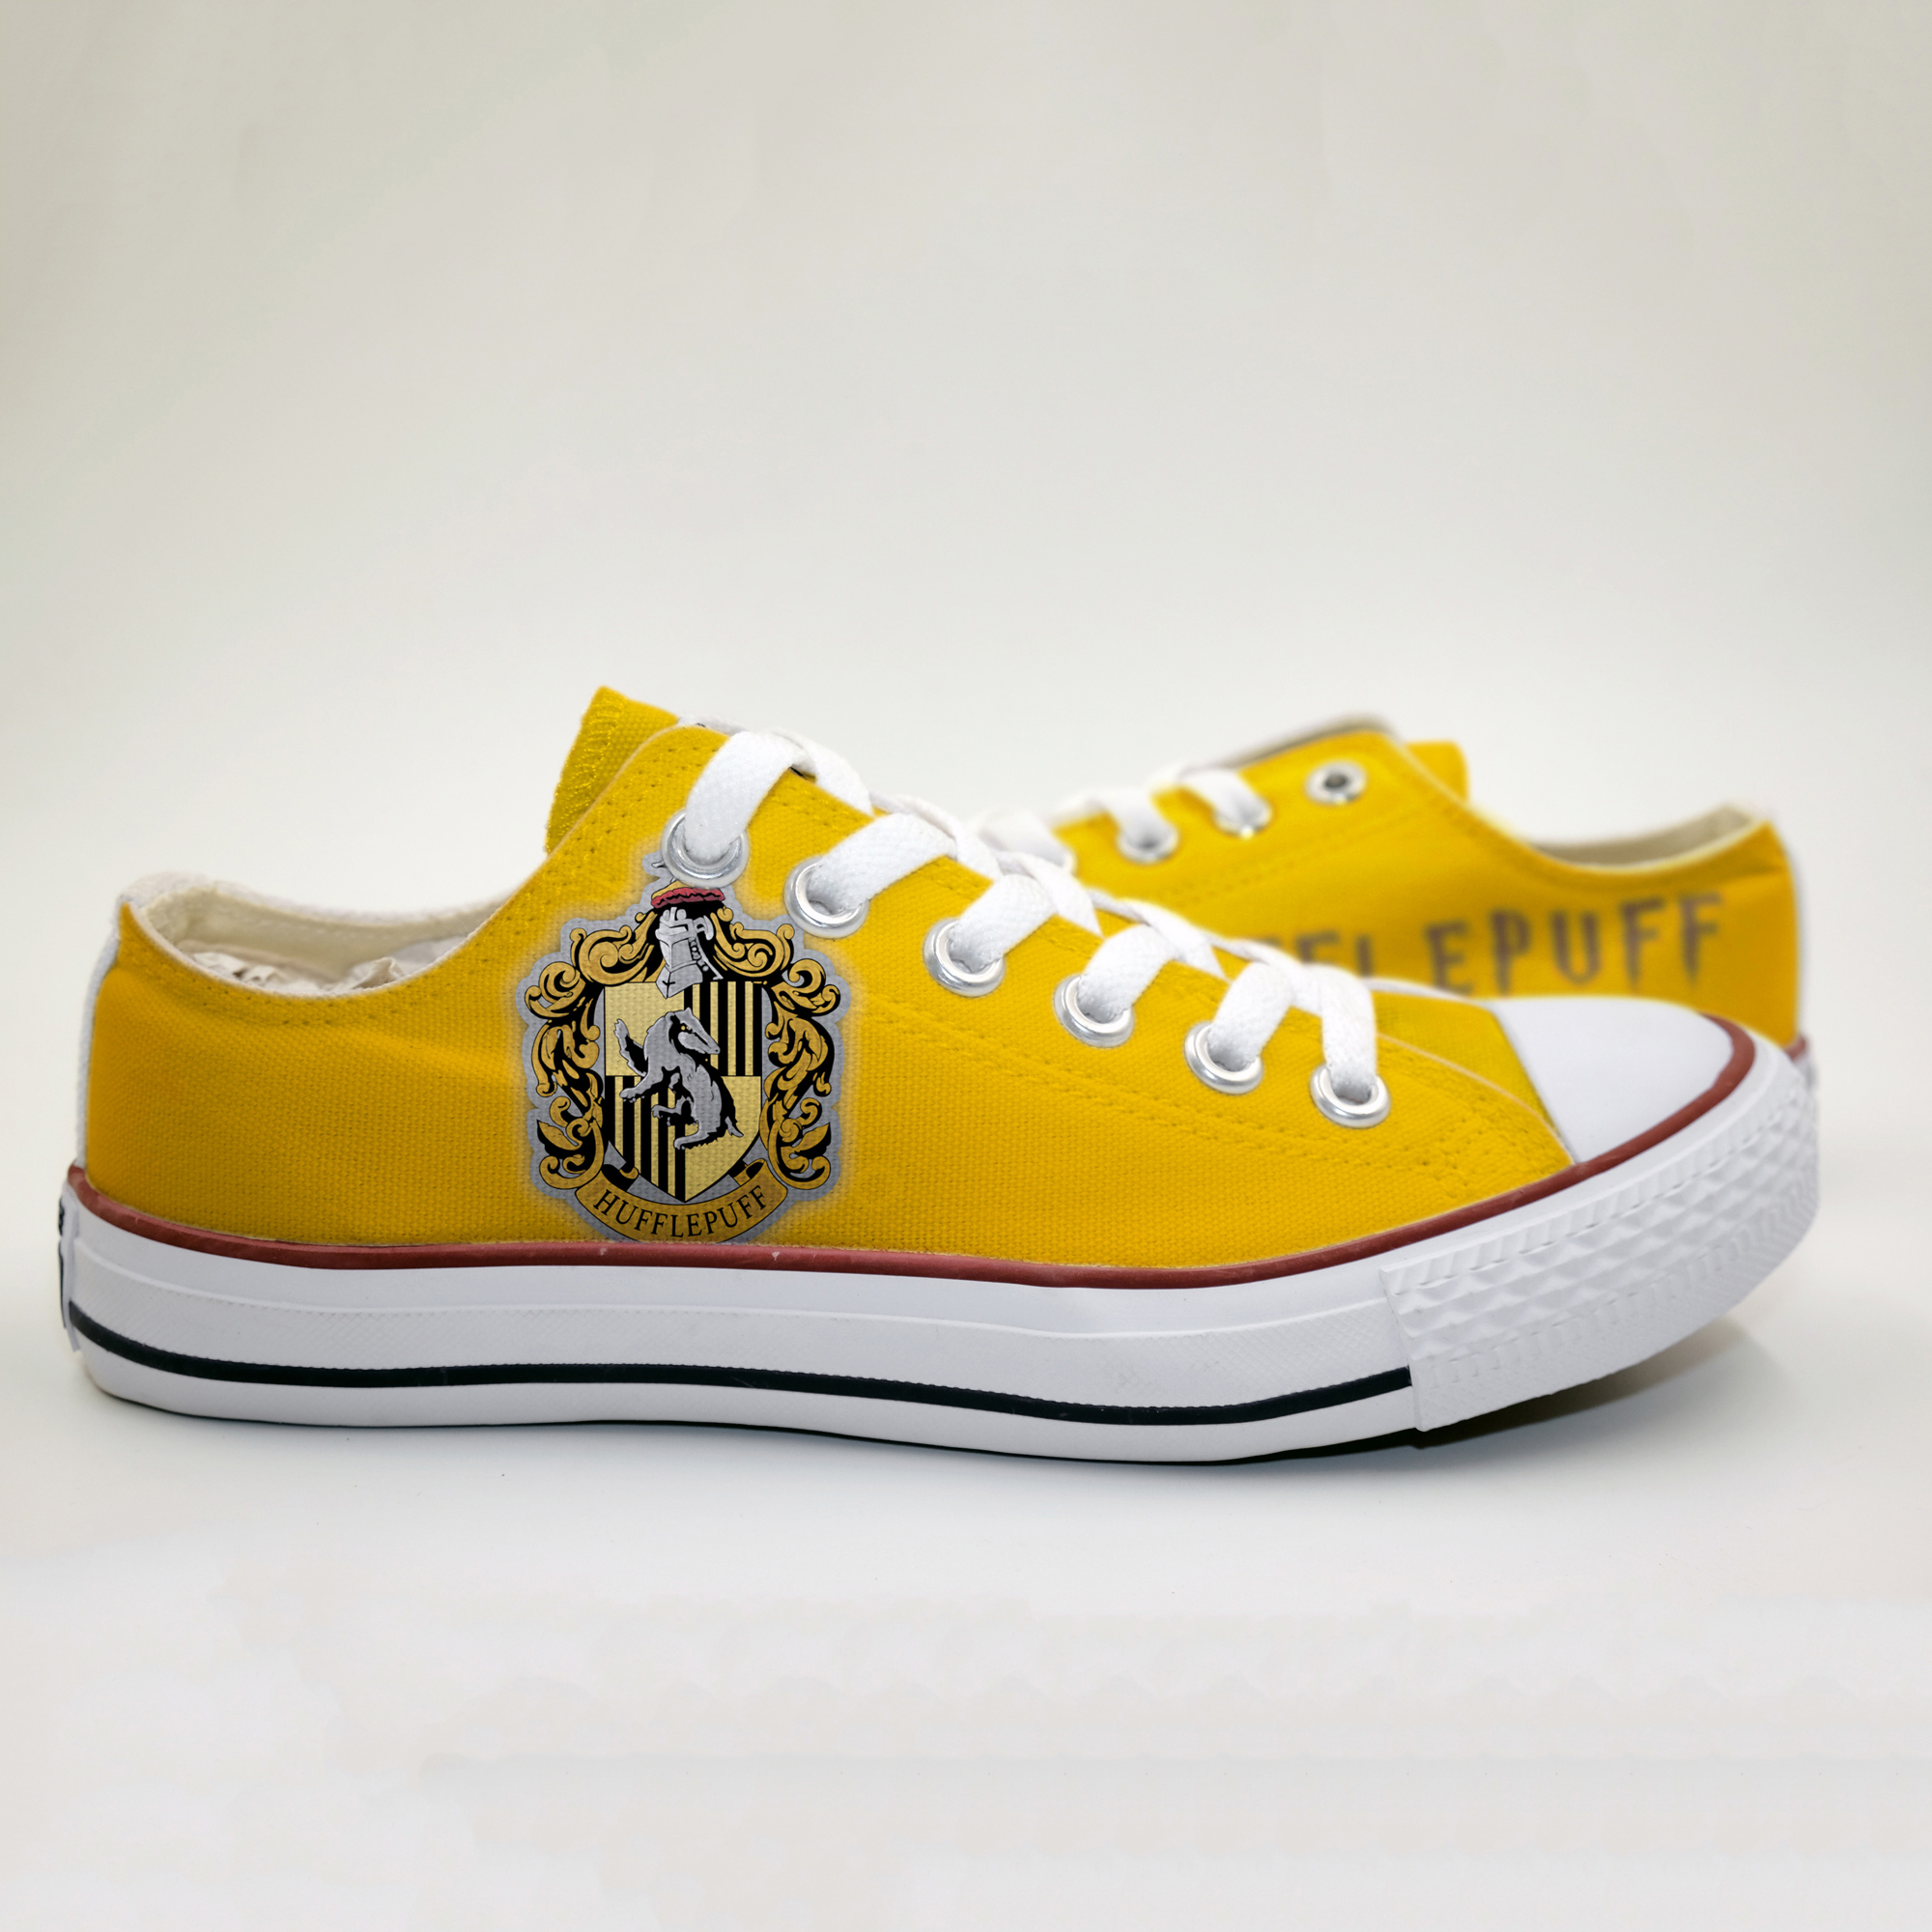 HARRY POTTER SHOES by